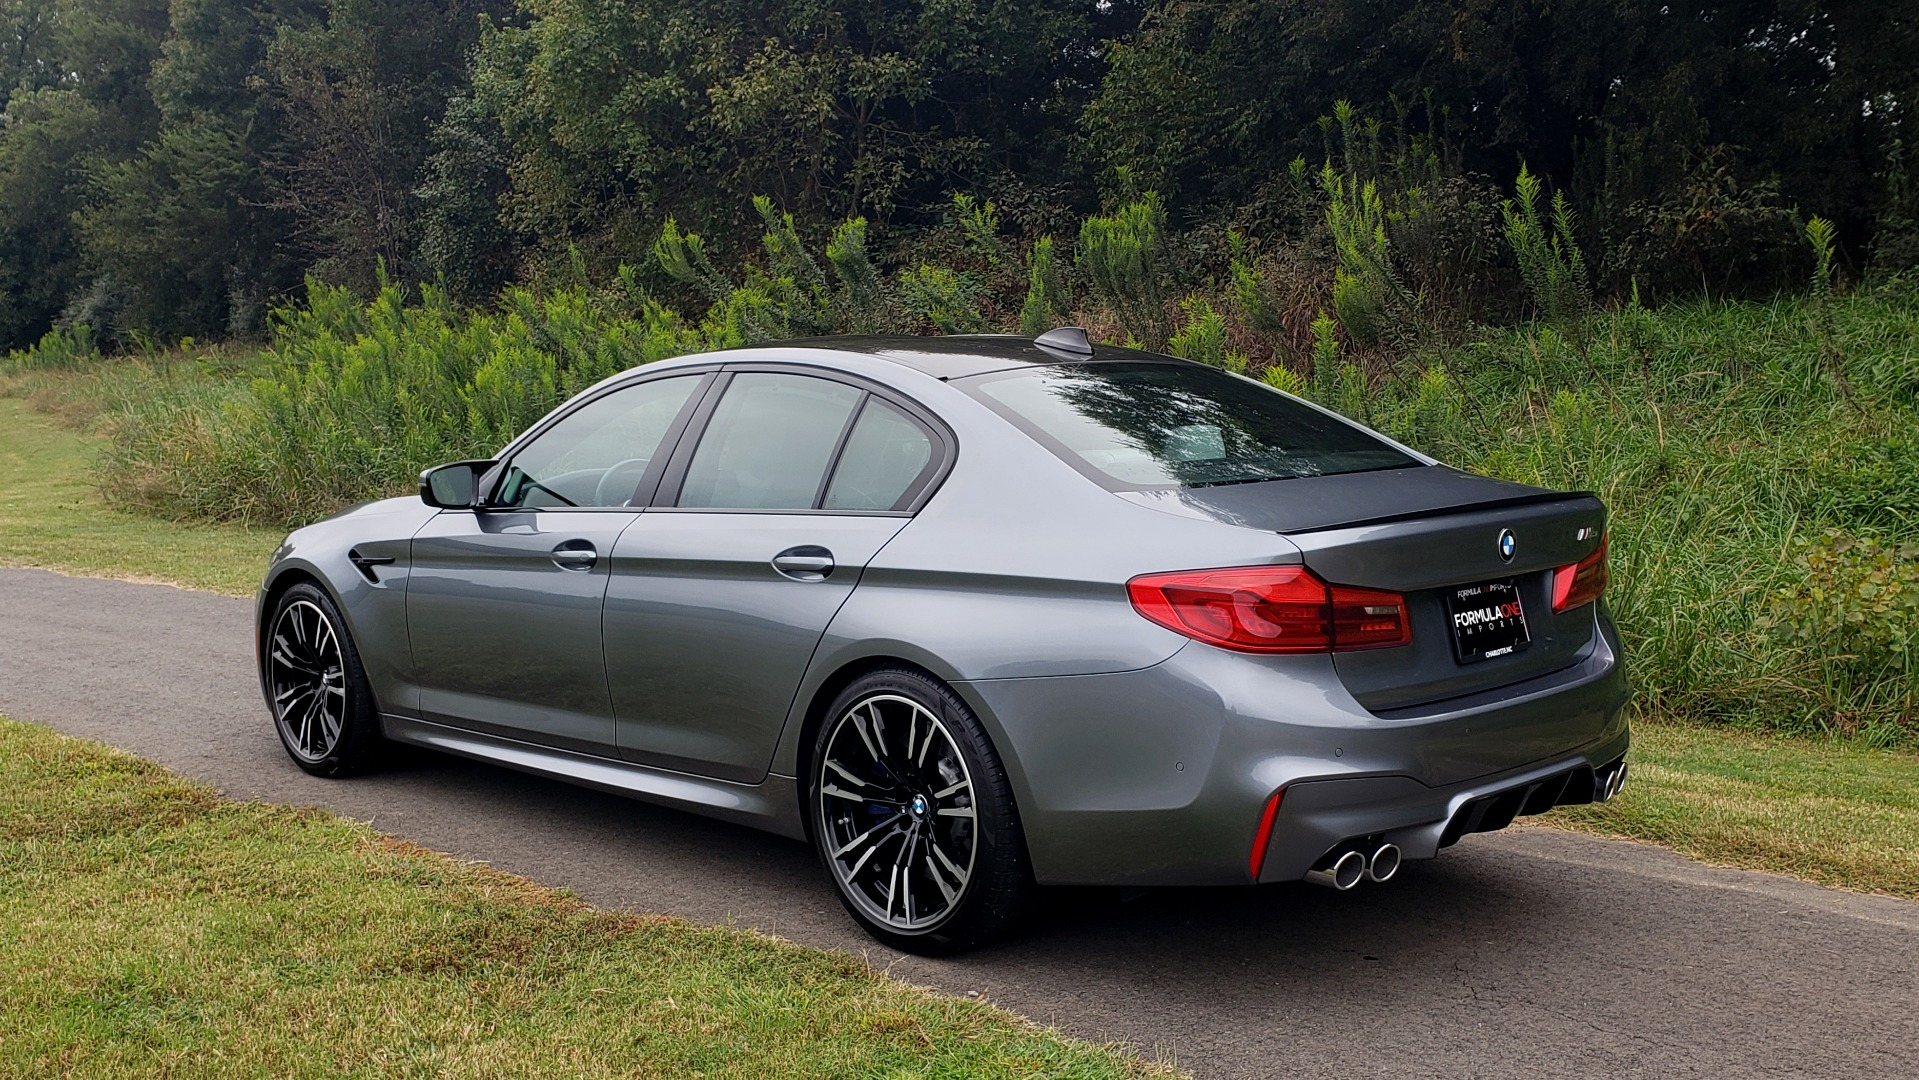 Used 2019 BMW M5 EXEC PKG / DRVR ASST PLUS / B&W SOUND / NAV / REARVIEW for sale Sold at Formula Imports in Charlotte NC 28227 9